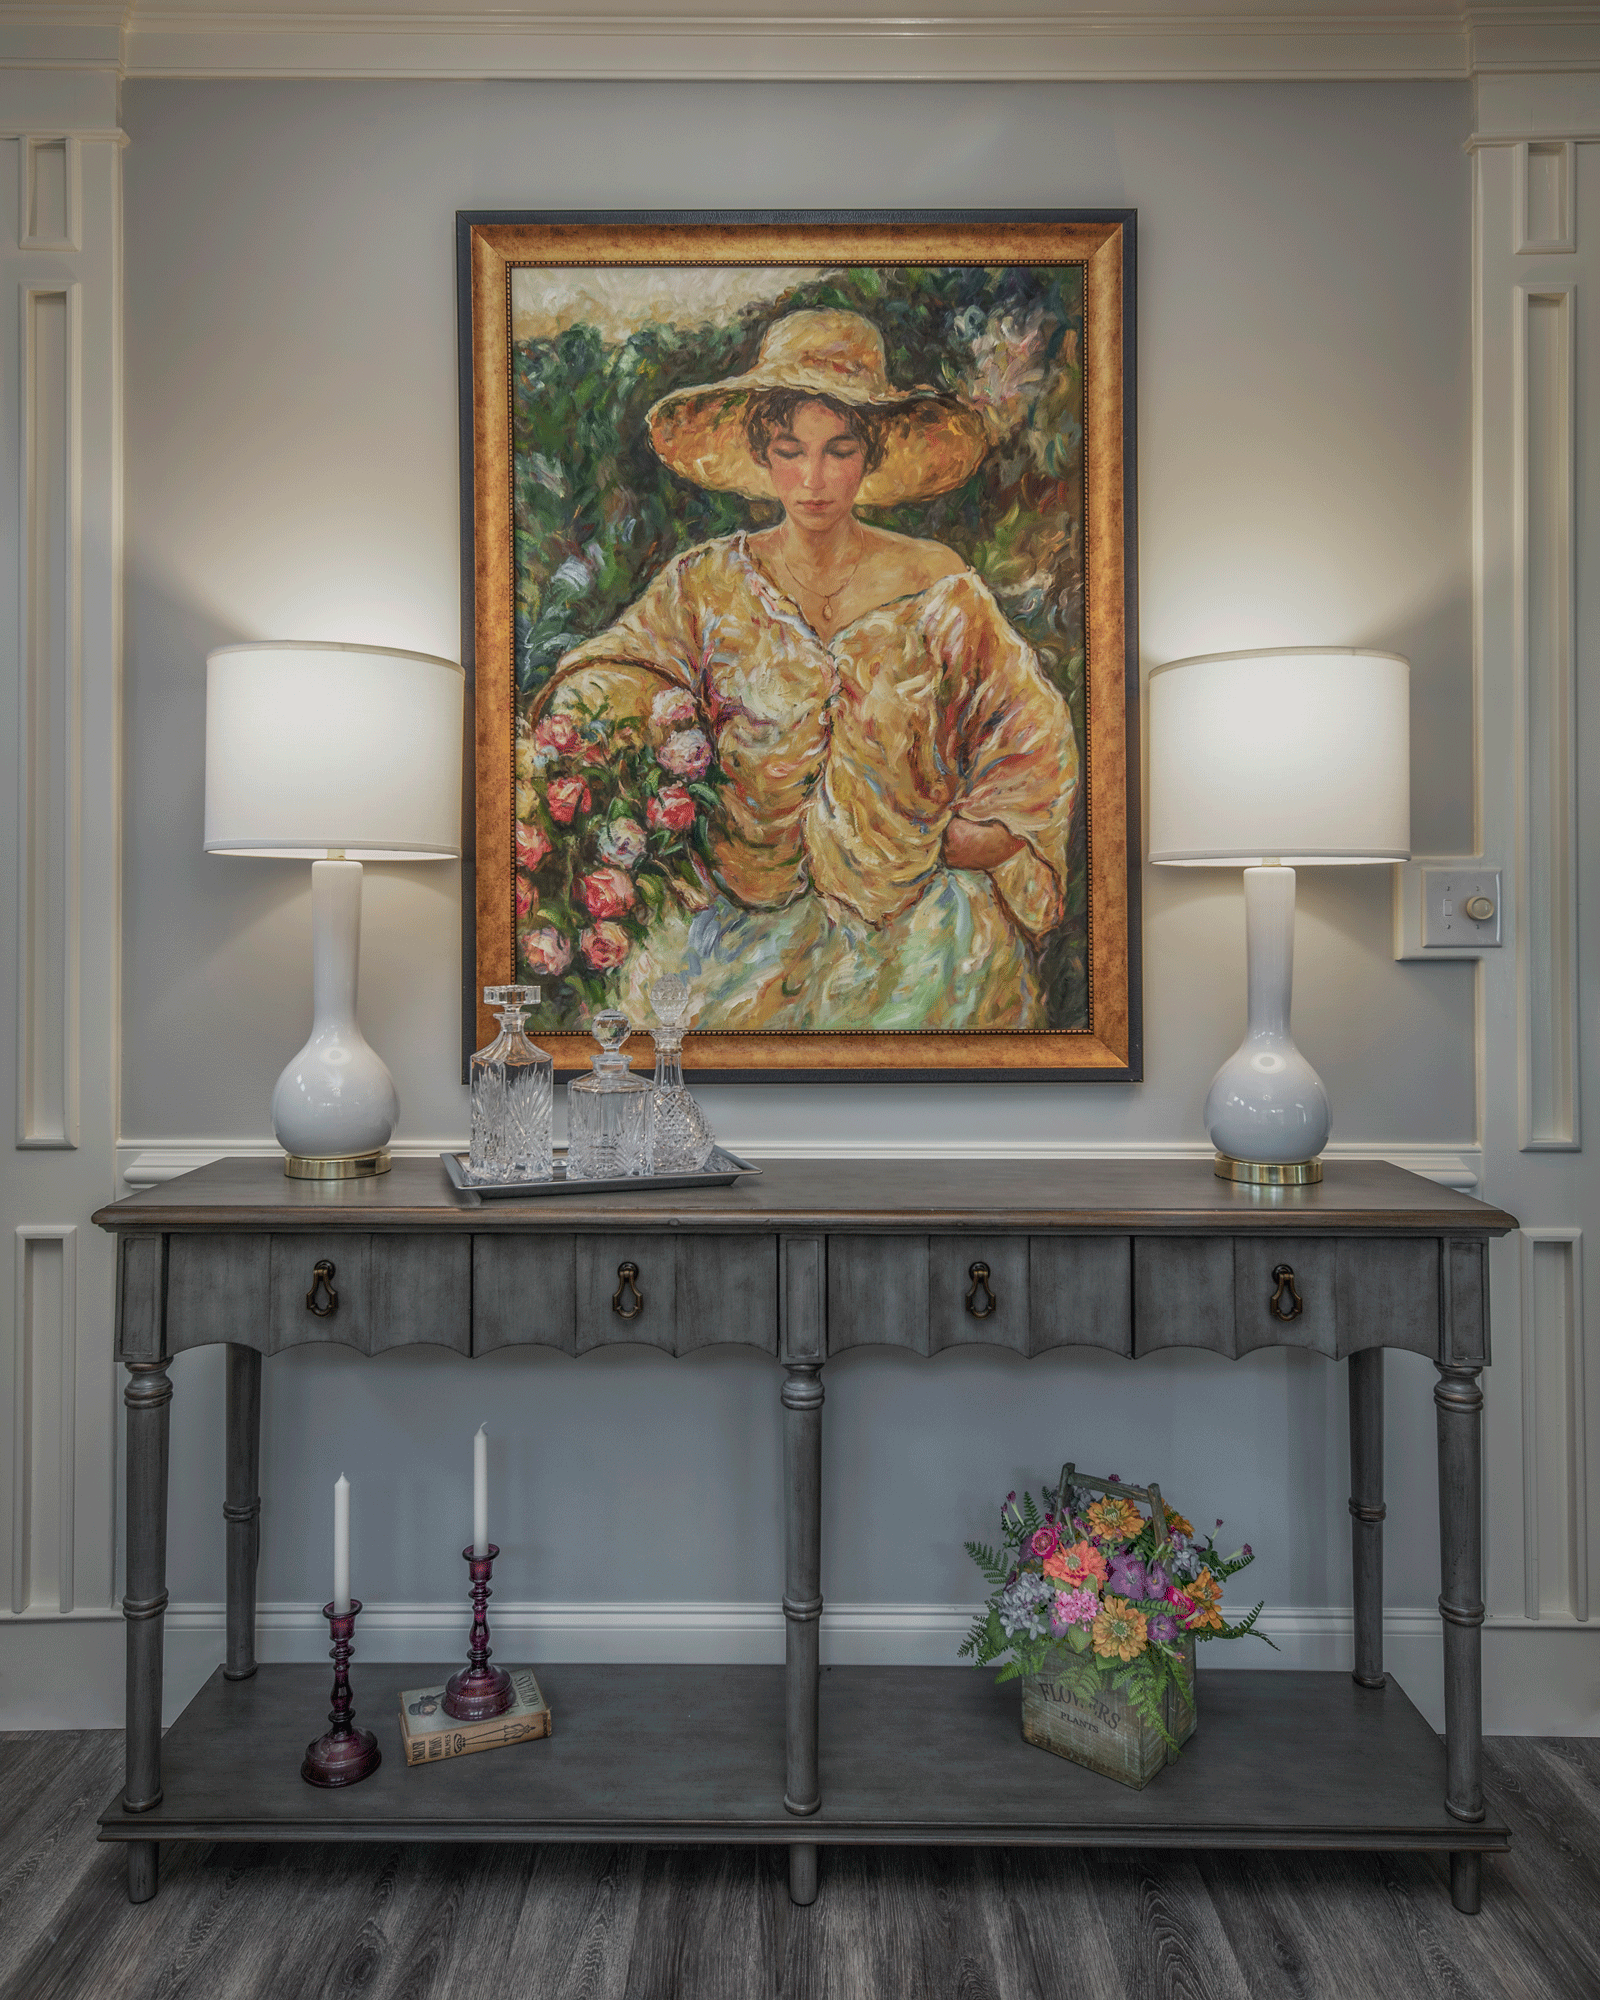 Console table with table lamps, decor, artwork, wainscoting decor